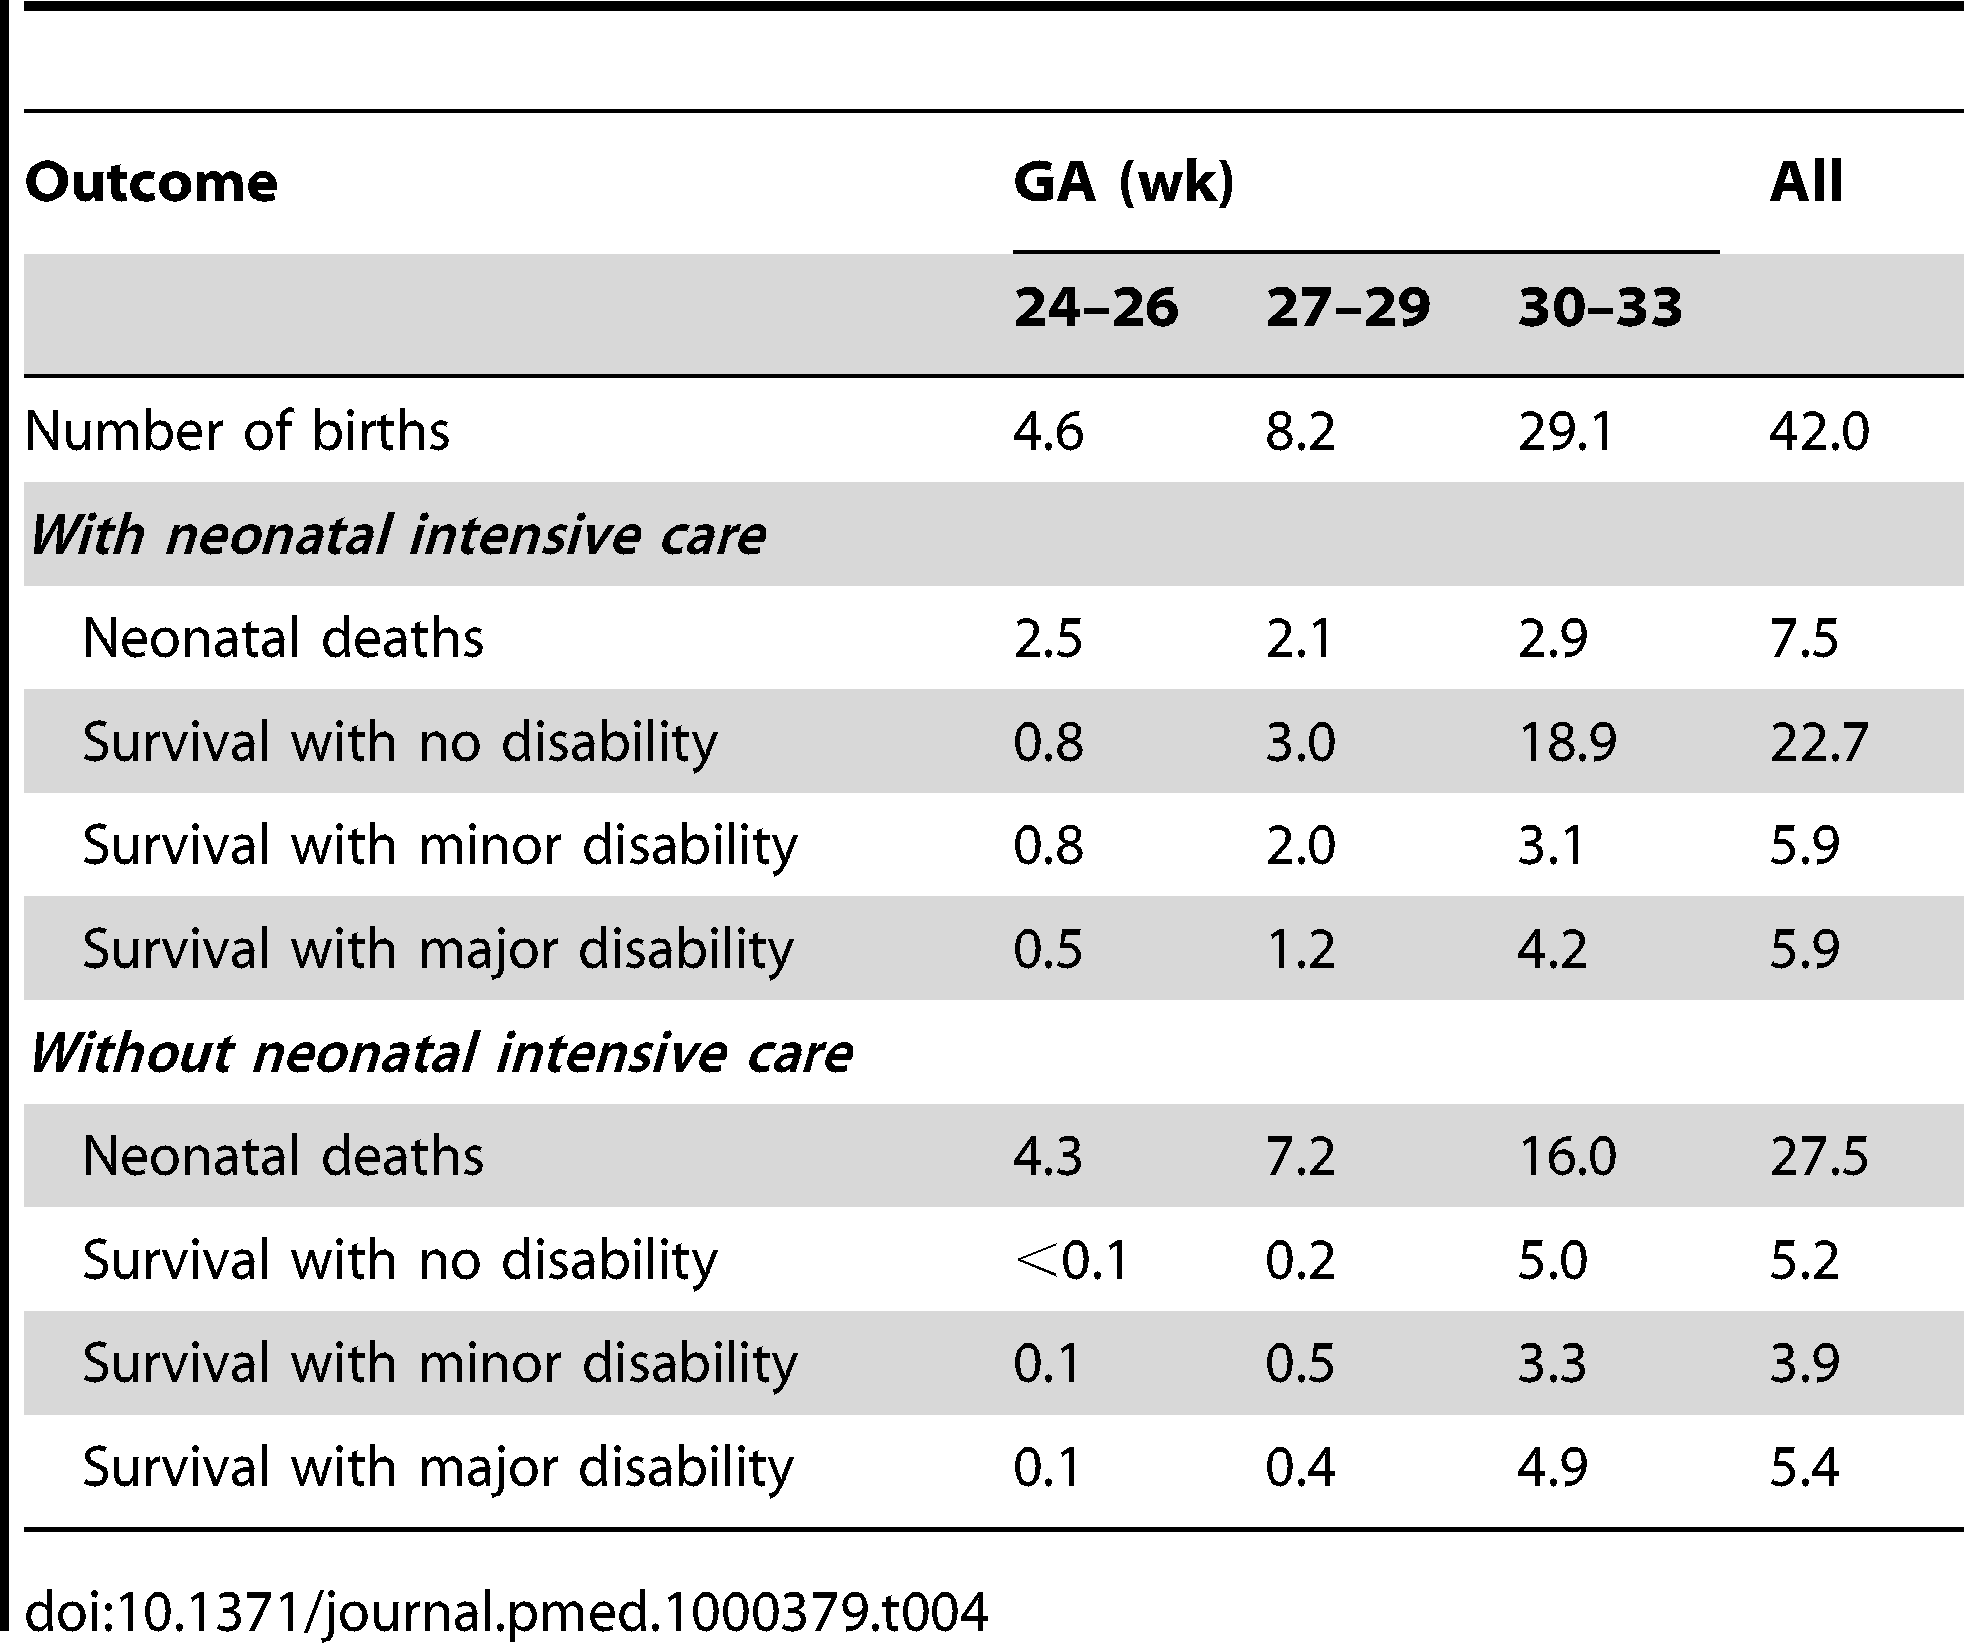 Population health outcomes during the neonatal period, with or without neonatal intensive care (thousands).